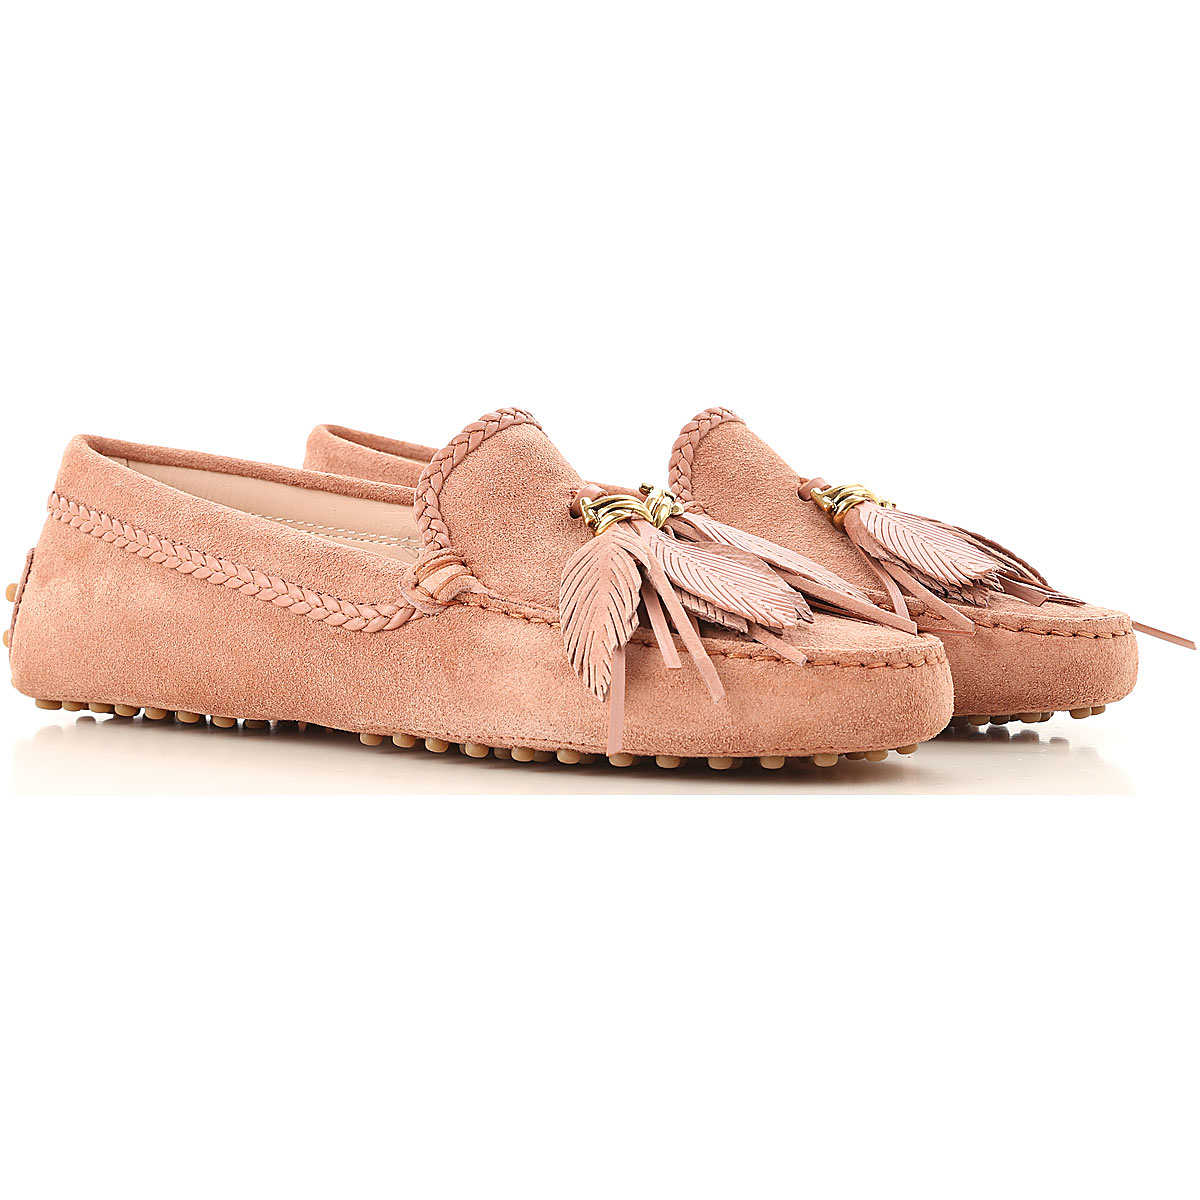 Tods Loafers for Women On Sale Dusty Pink DK - GOOFASH - Womens FLAT SHOES